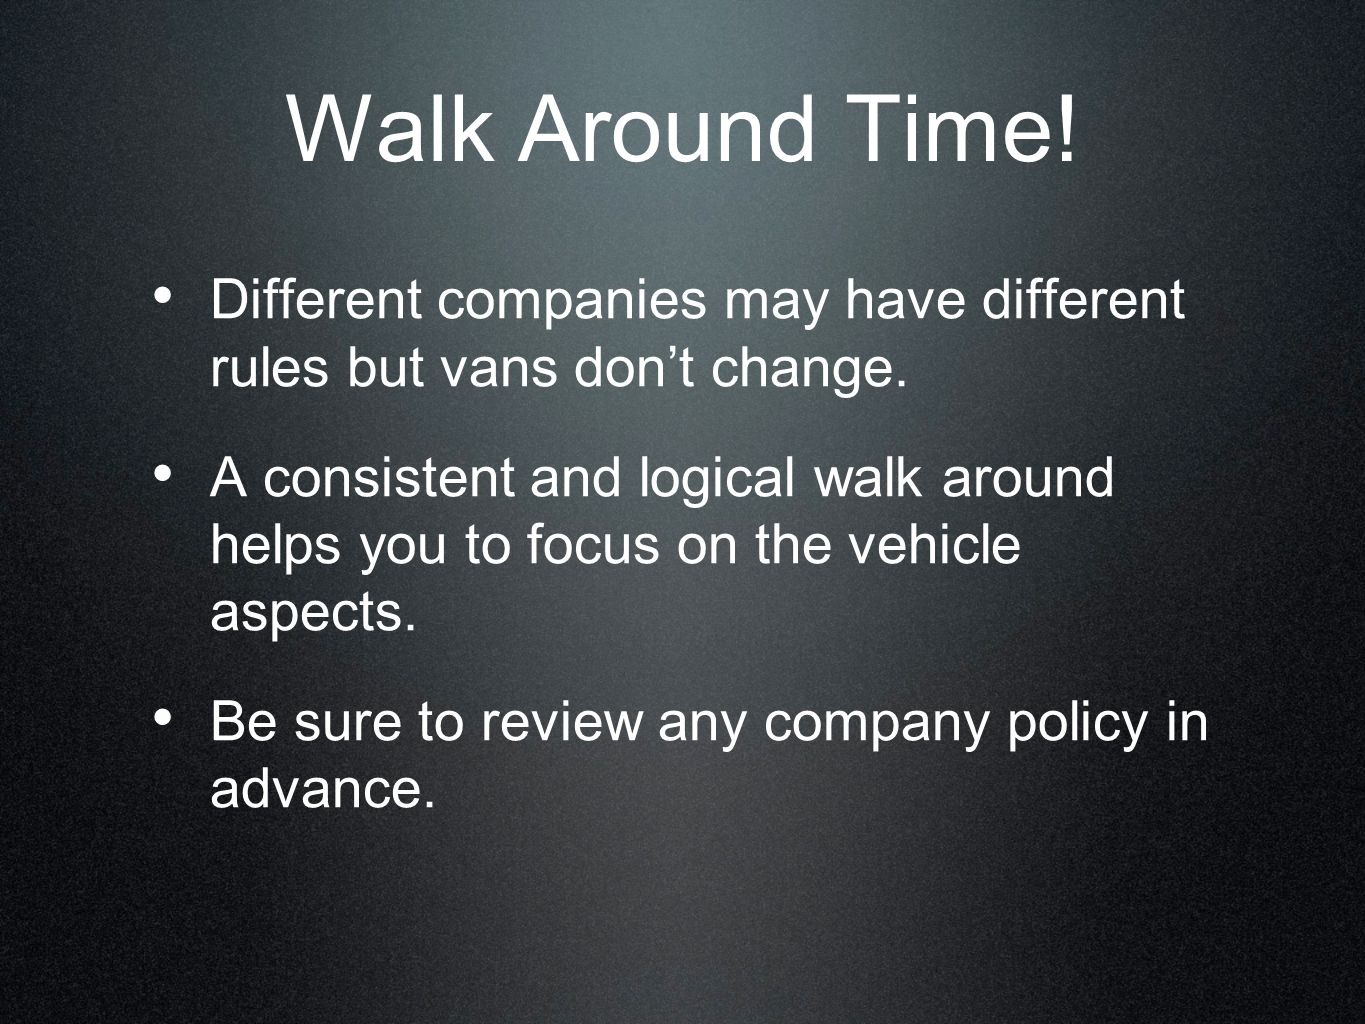 Walk Around Time! Different companies may have different rules but vans don't change.